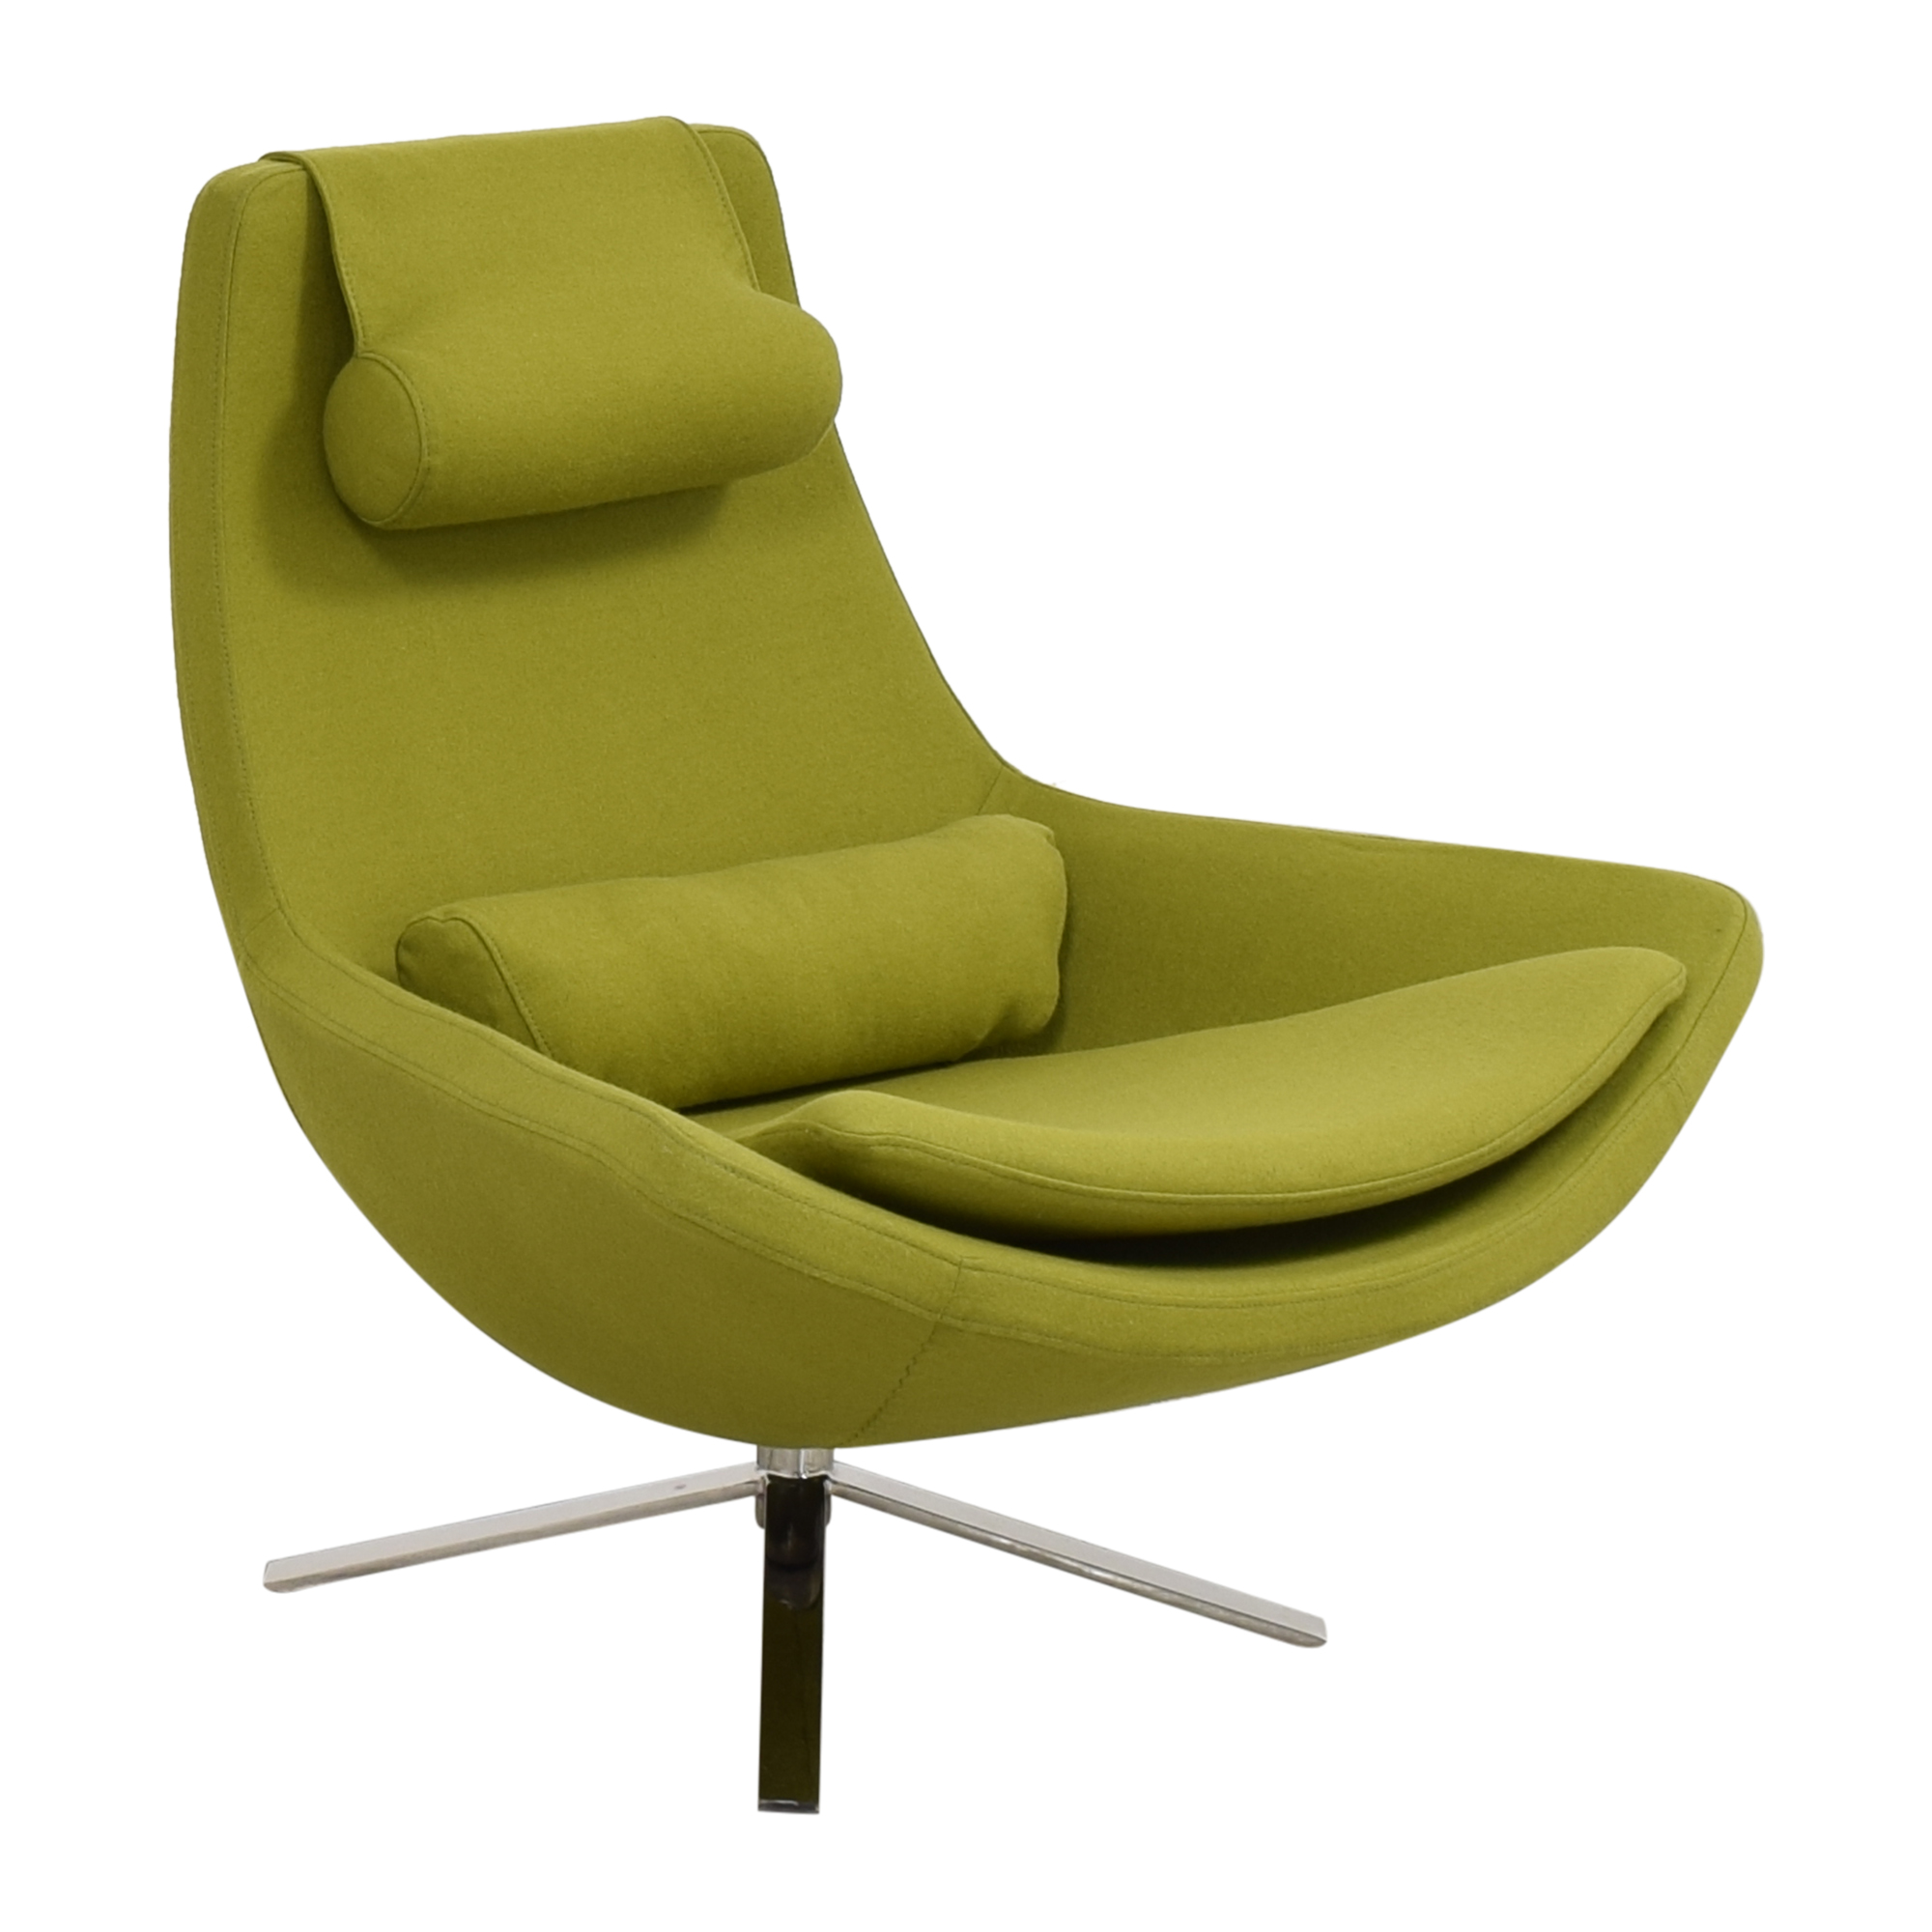 buy Kardiel Kardiel Retropolitan Chair online